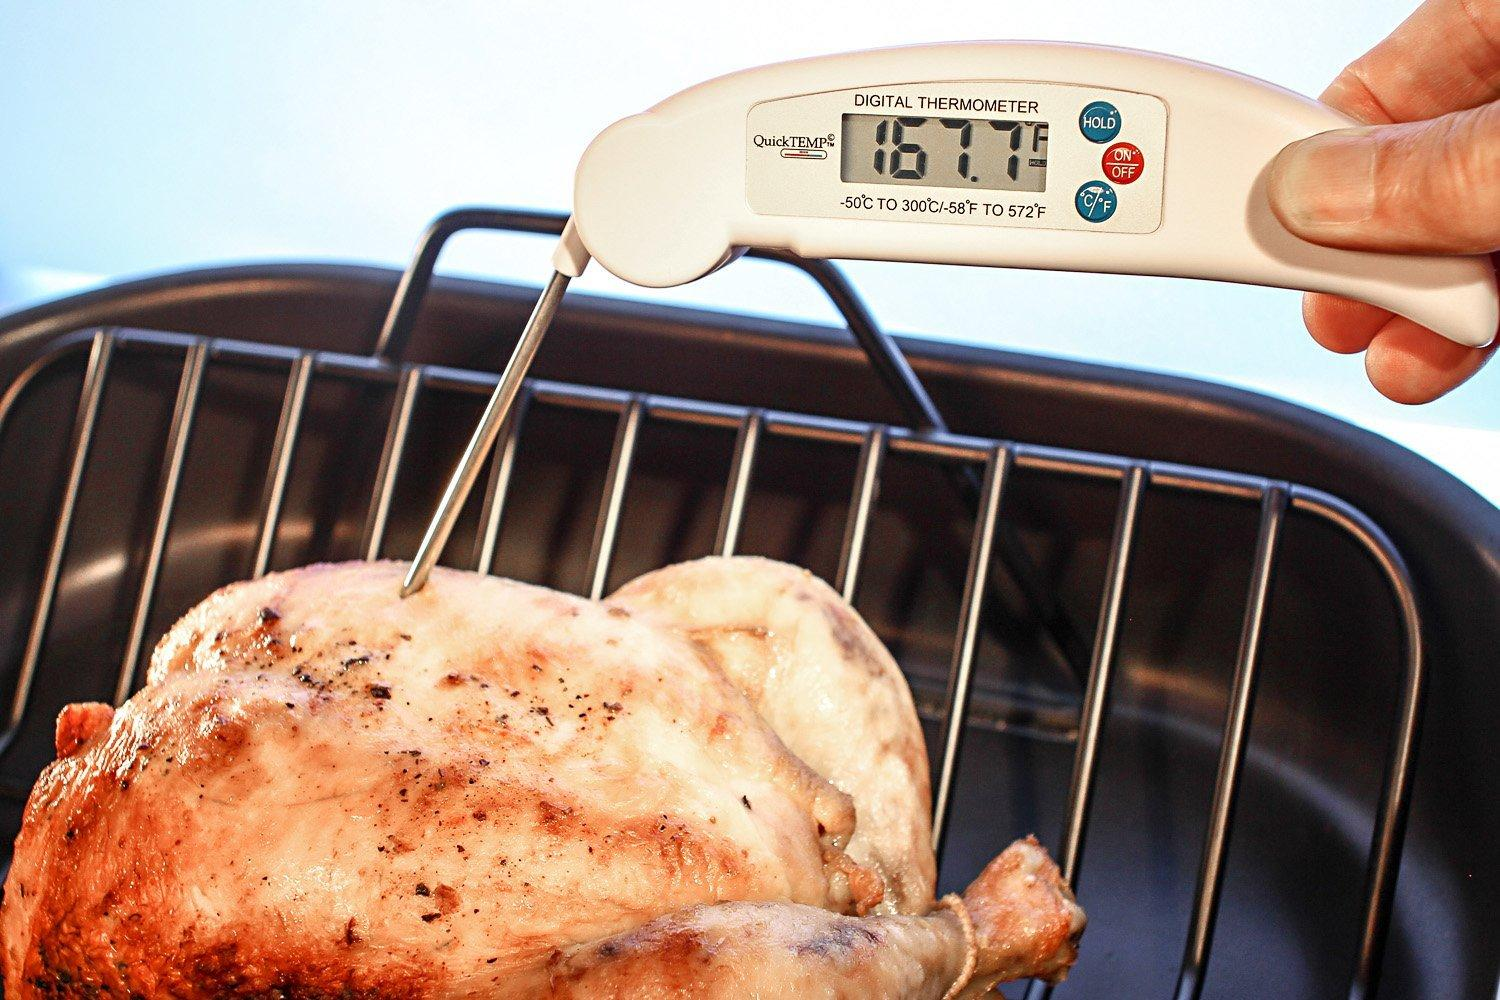 Food Thermometer Big W Digital Instant Read Bbq Thermometer